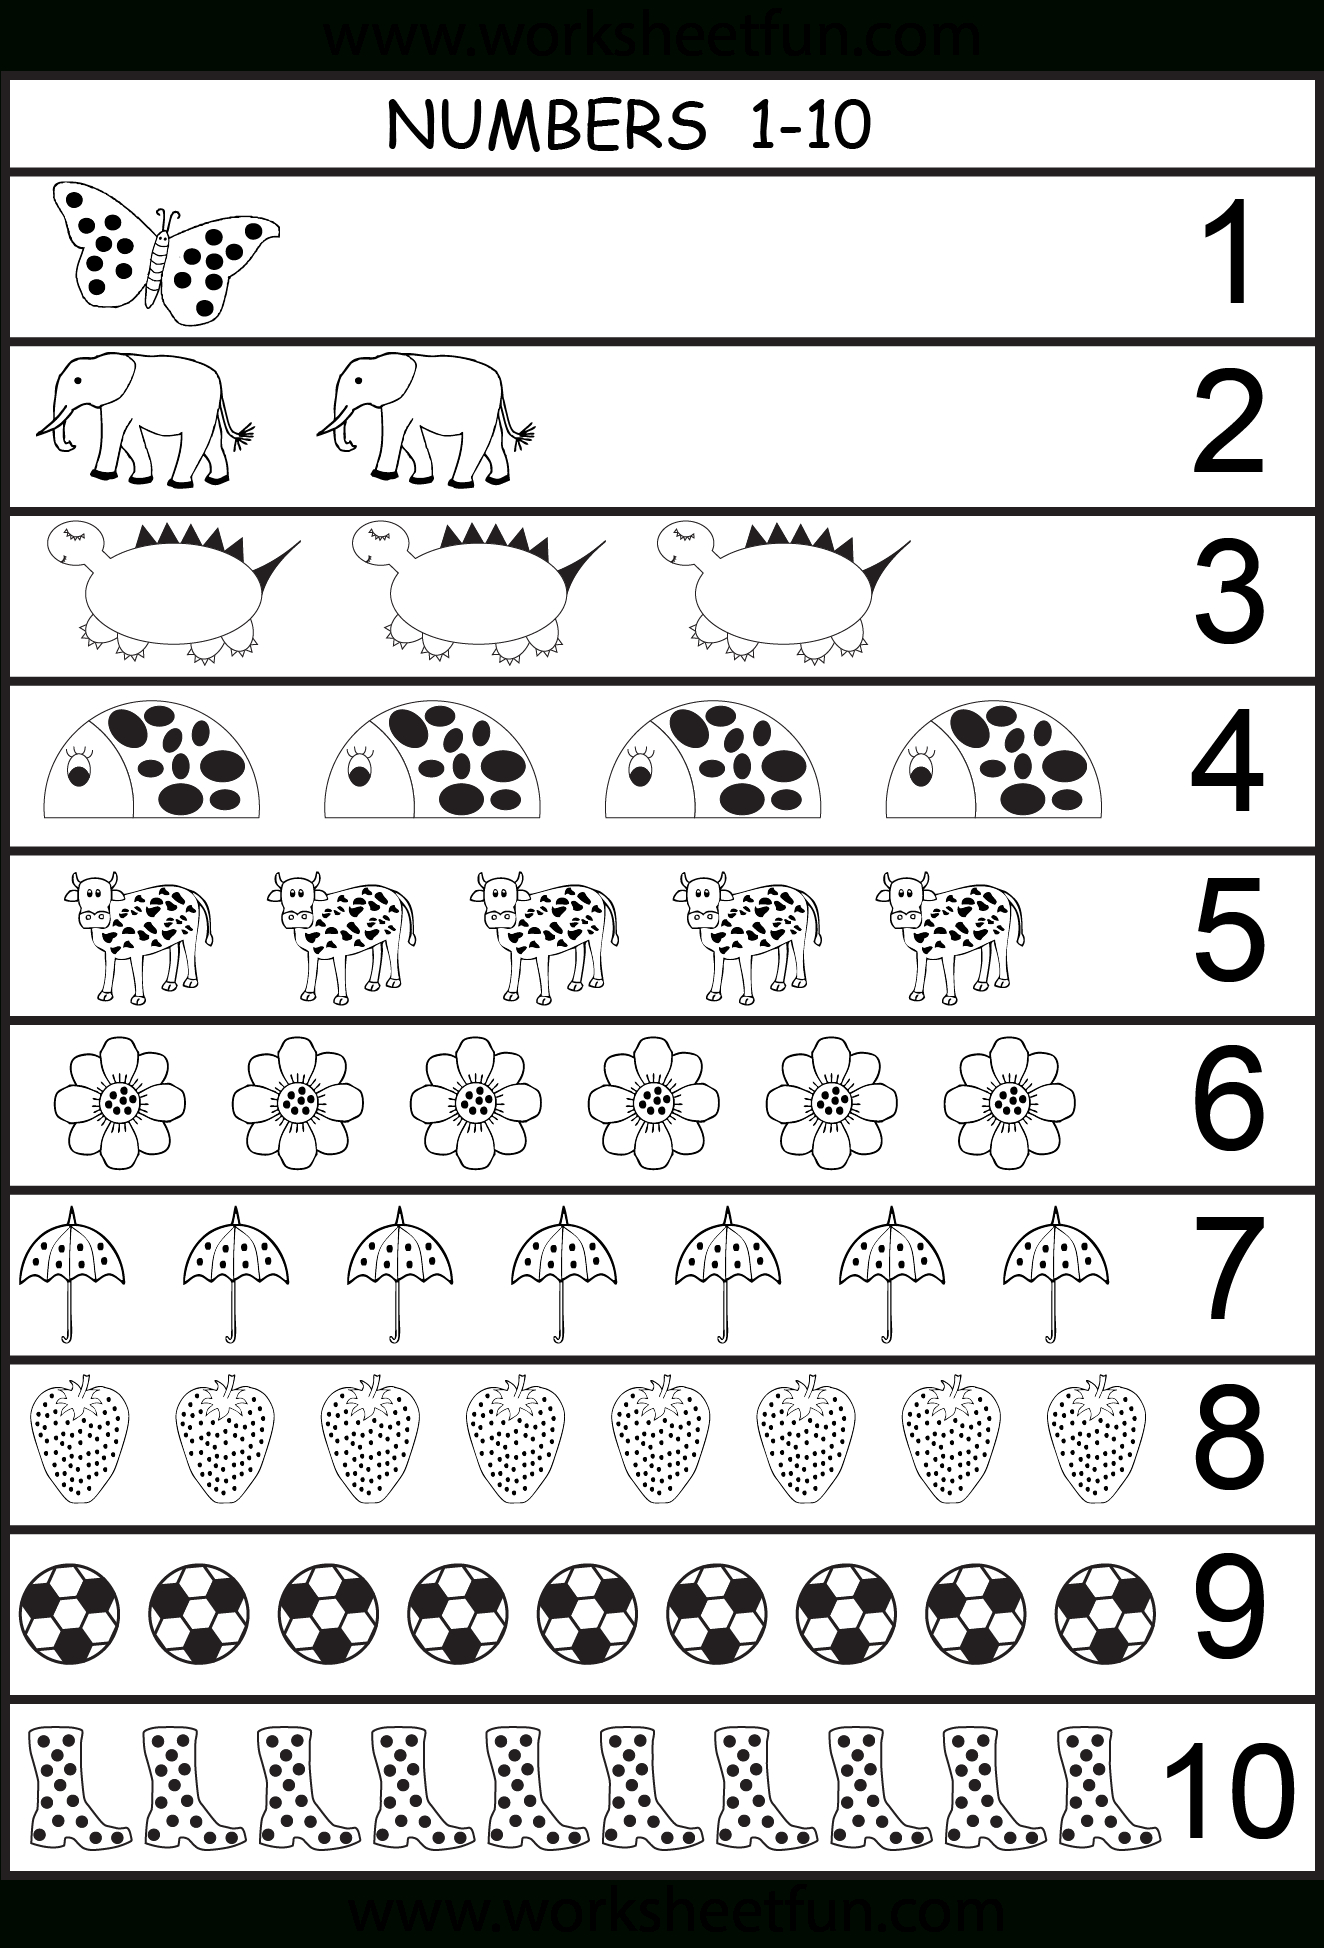 Number Chart 1-10 | Projects To Try | Pinterest | Preschool - Free Printable Number Chart 1 10